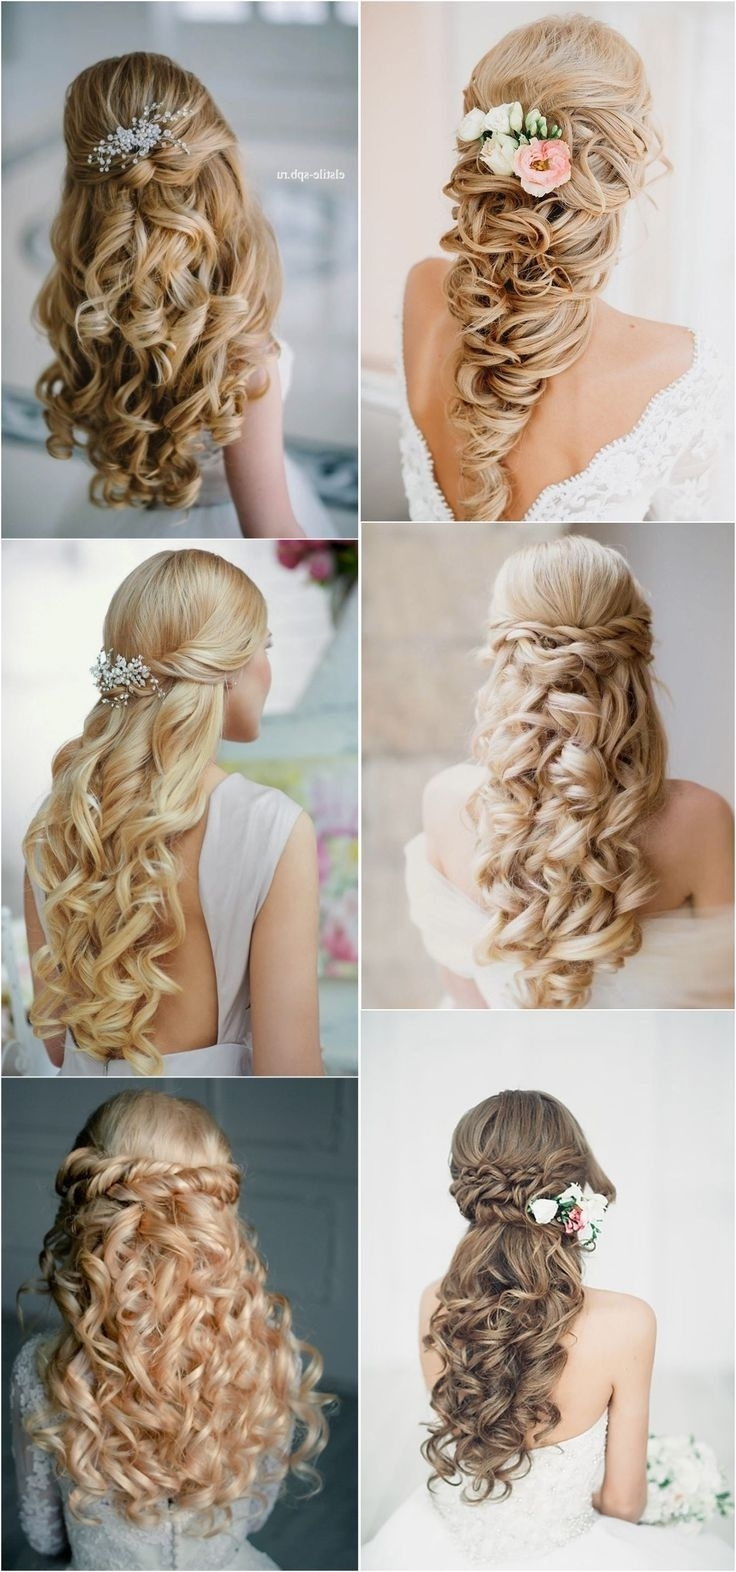 Latest Elstile Wedding Hairstyles For Long Hair Within Bridal Hairstyles : 40 Stunning Half Up Half Down Wedding Hairstyles (View 14 of 15)